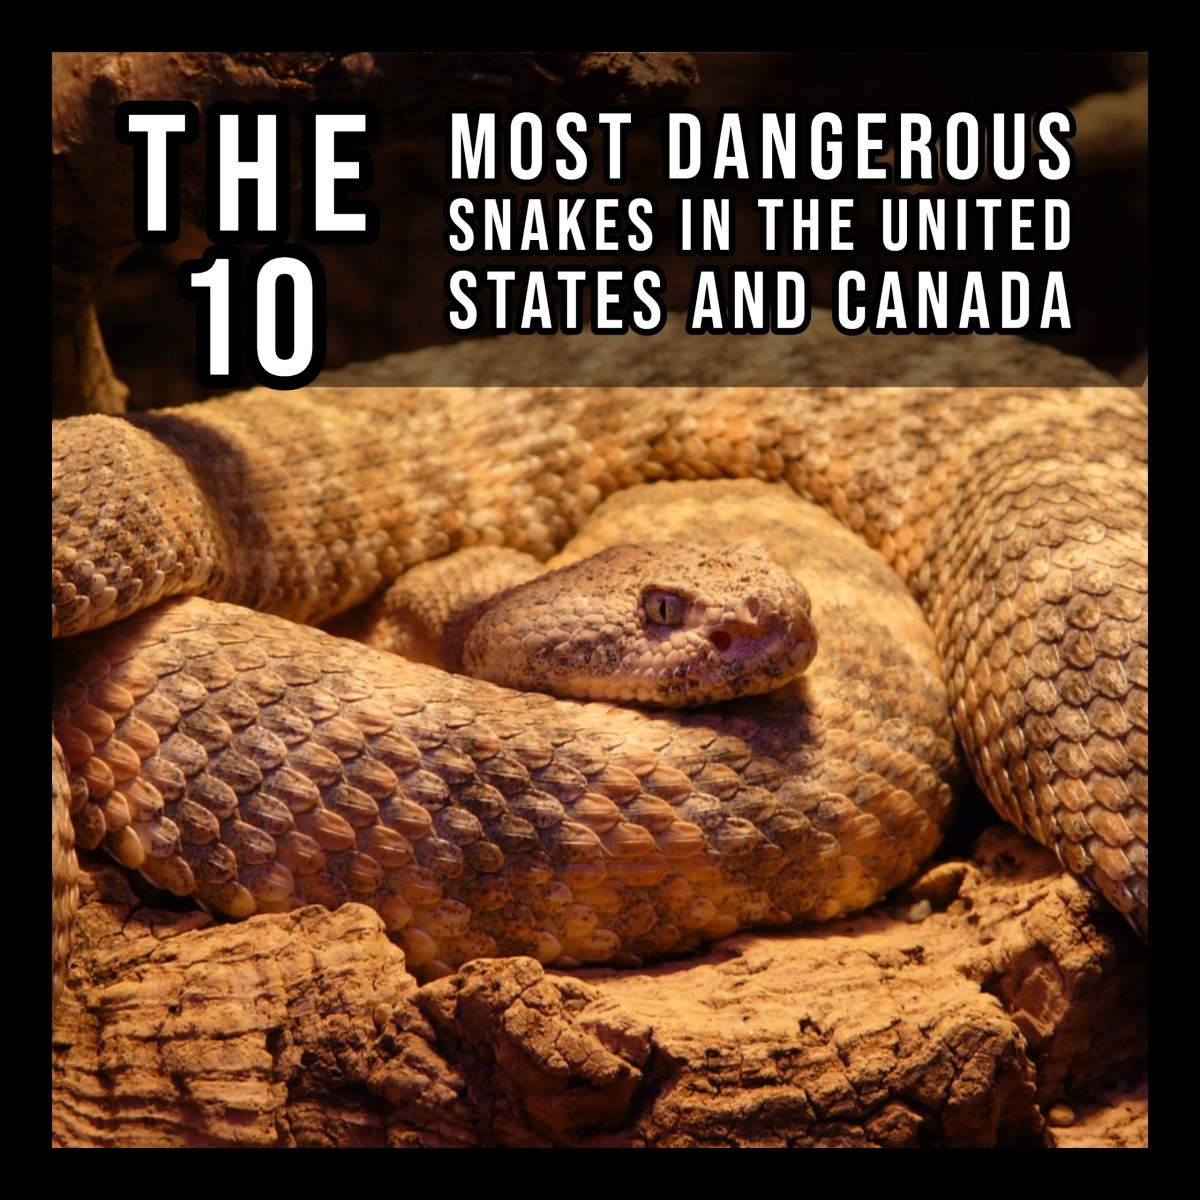 The 10 most dangerous snakes in North America.